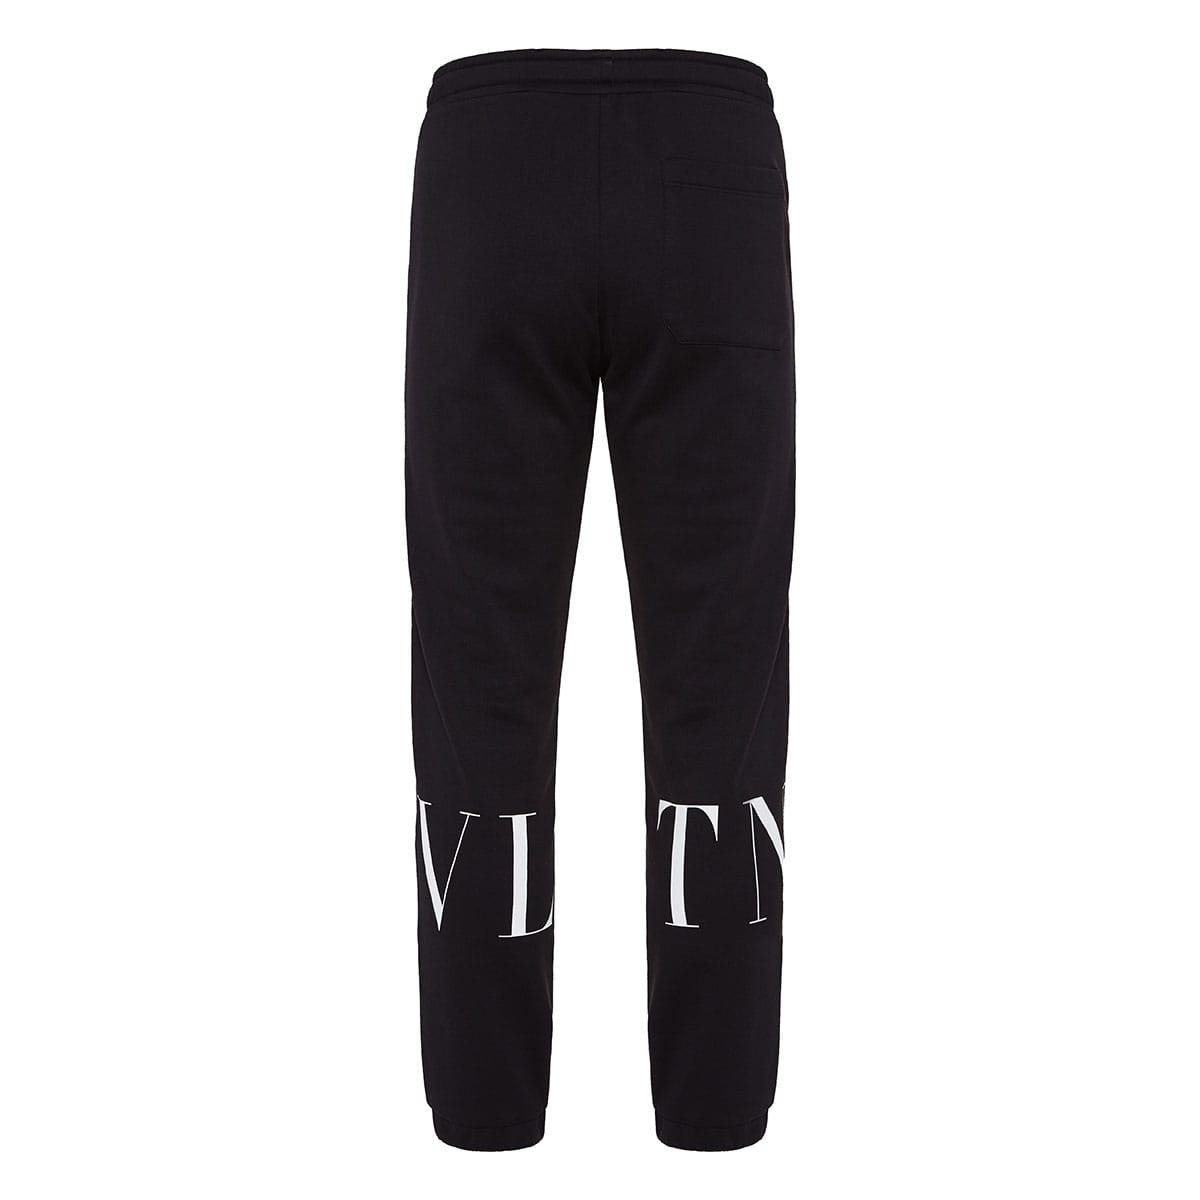 VLTN cotton track trousers